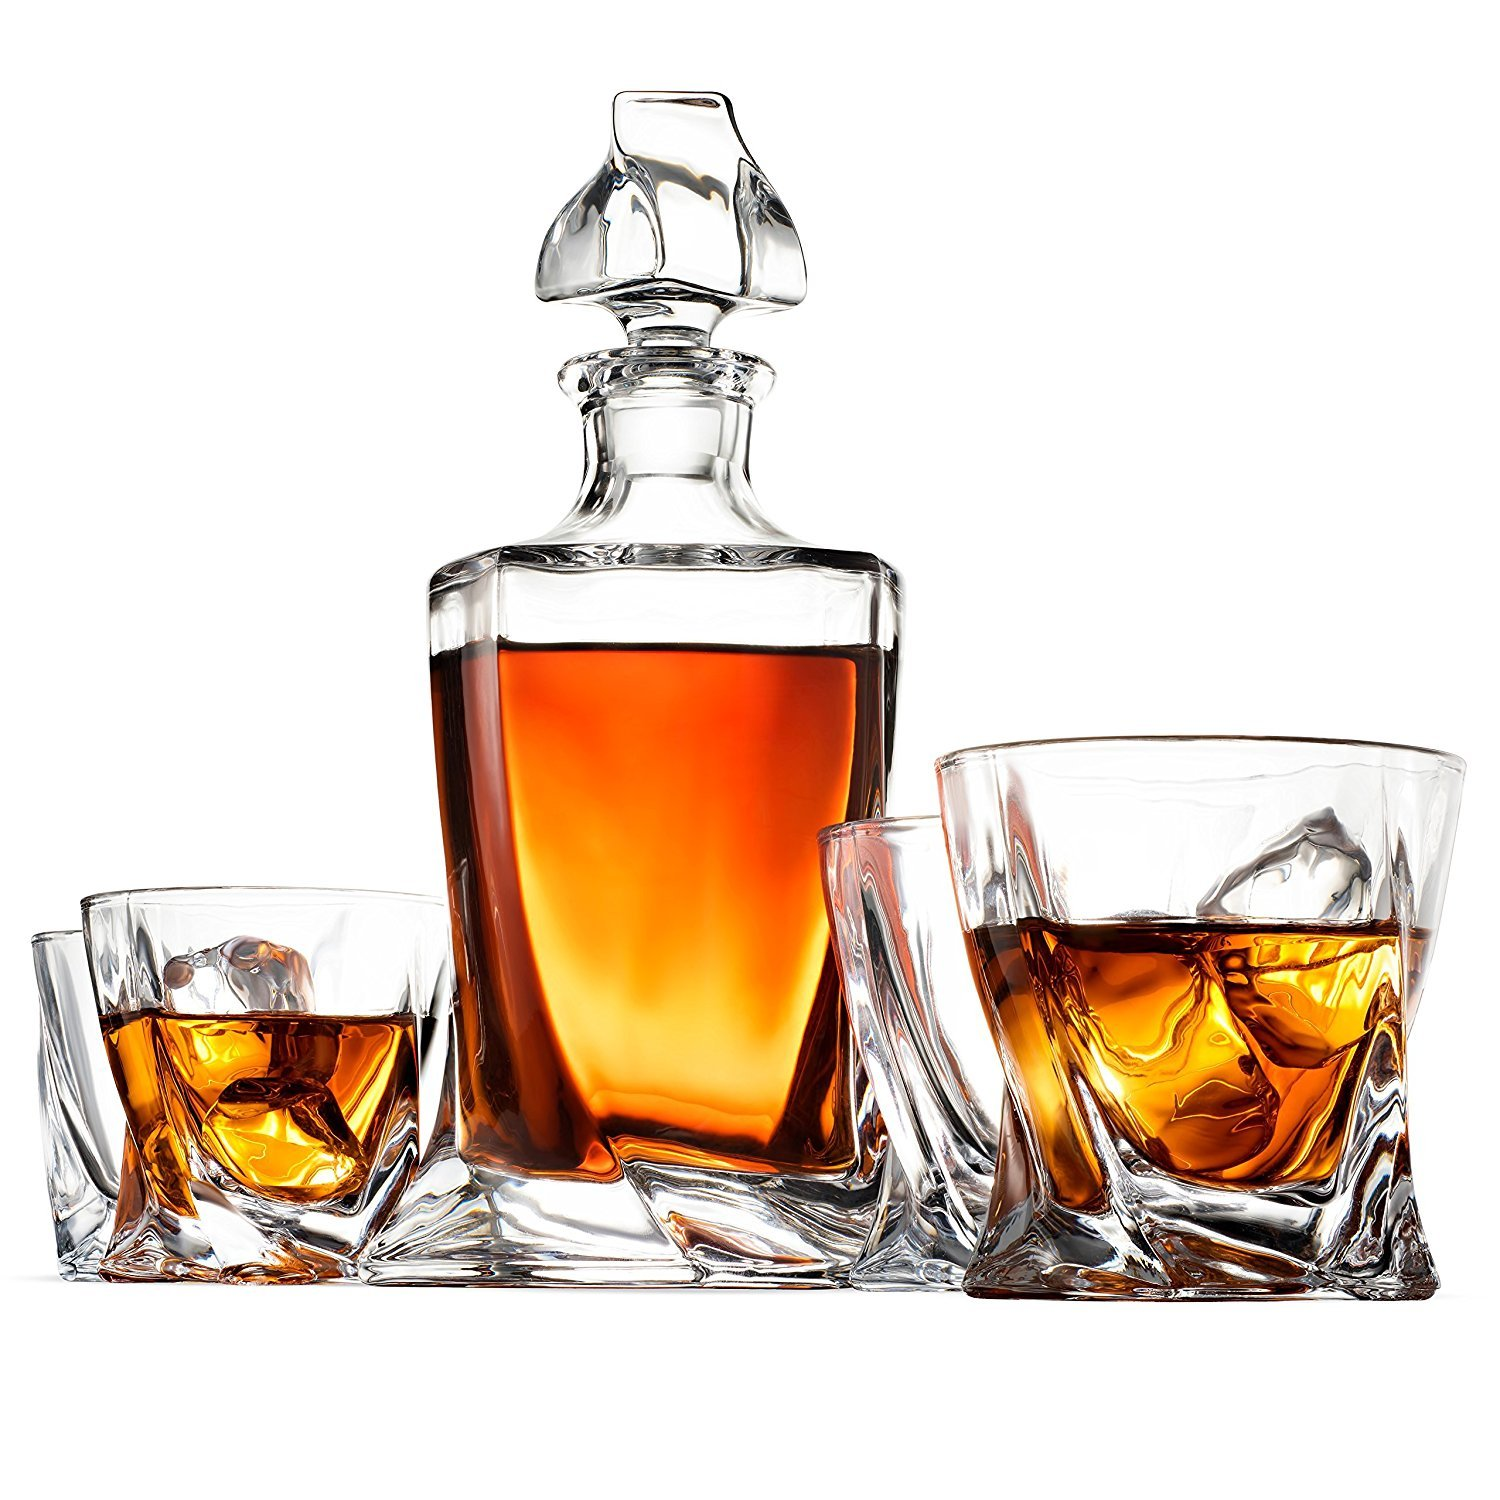 5-Piece European Style Whiskey Decanter and Glass Set - With Magnetic Gift Box - Exquisite Quadro Design Liquor Decanter & 4 Whiskey Glasses - Perfect Whiskey Decanter Set for Scotch Alcohol Bourbon. by FINEDINE